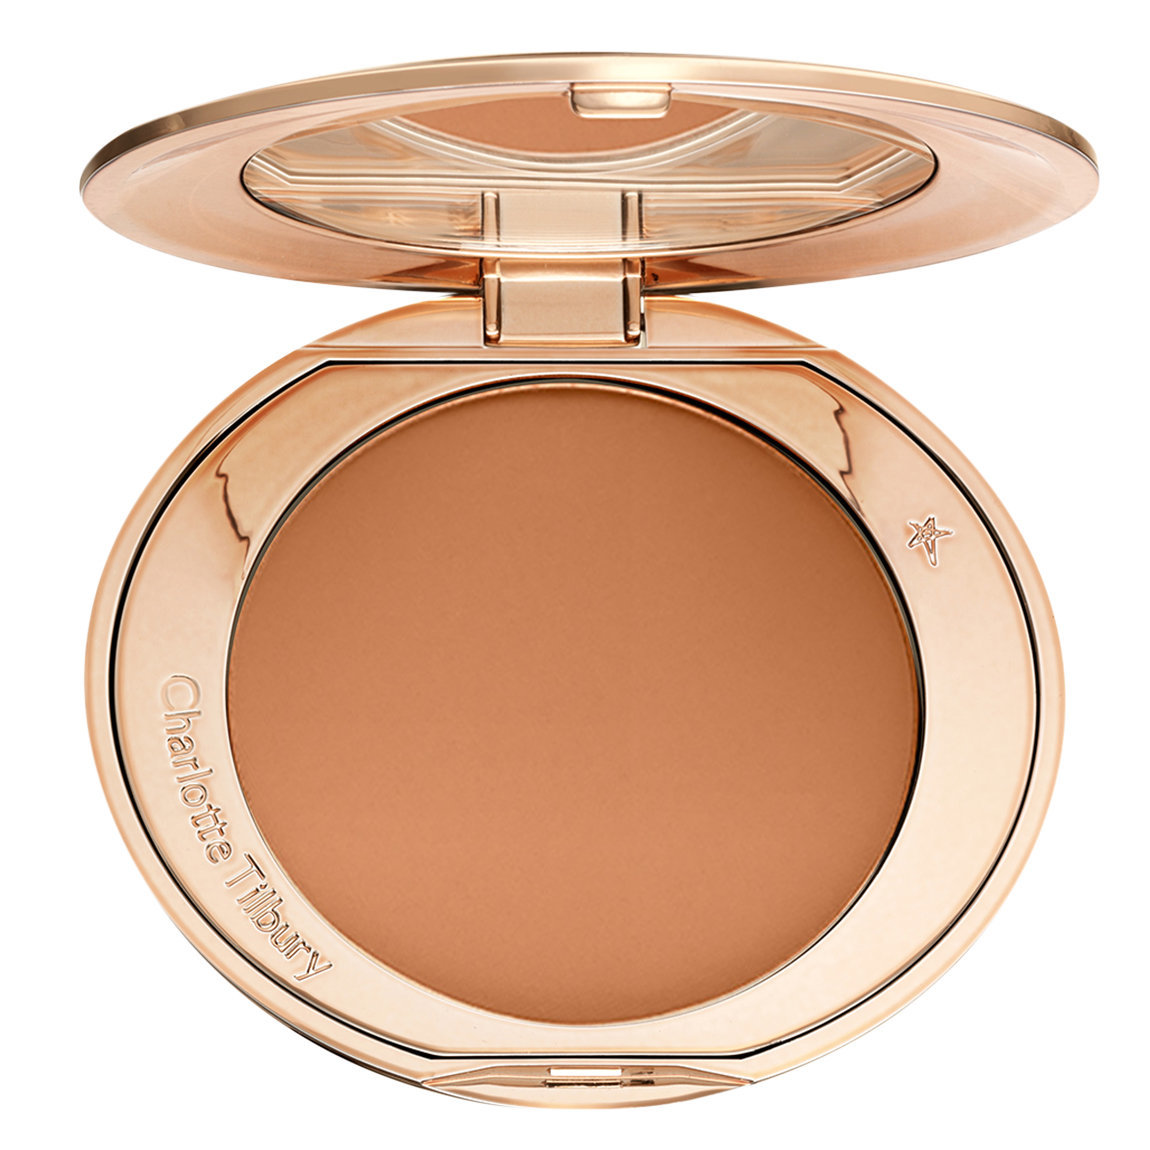 Charlotte Tilbury Airbrush Flawless Finish 4 Deep alternative view 1 - product swatch.